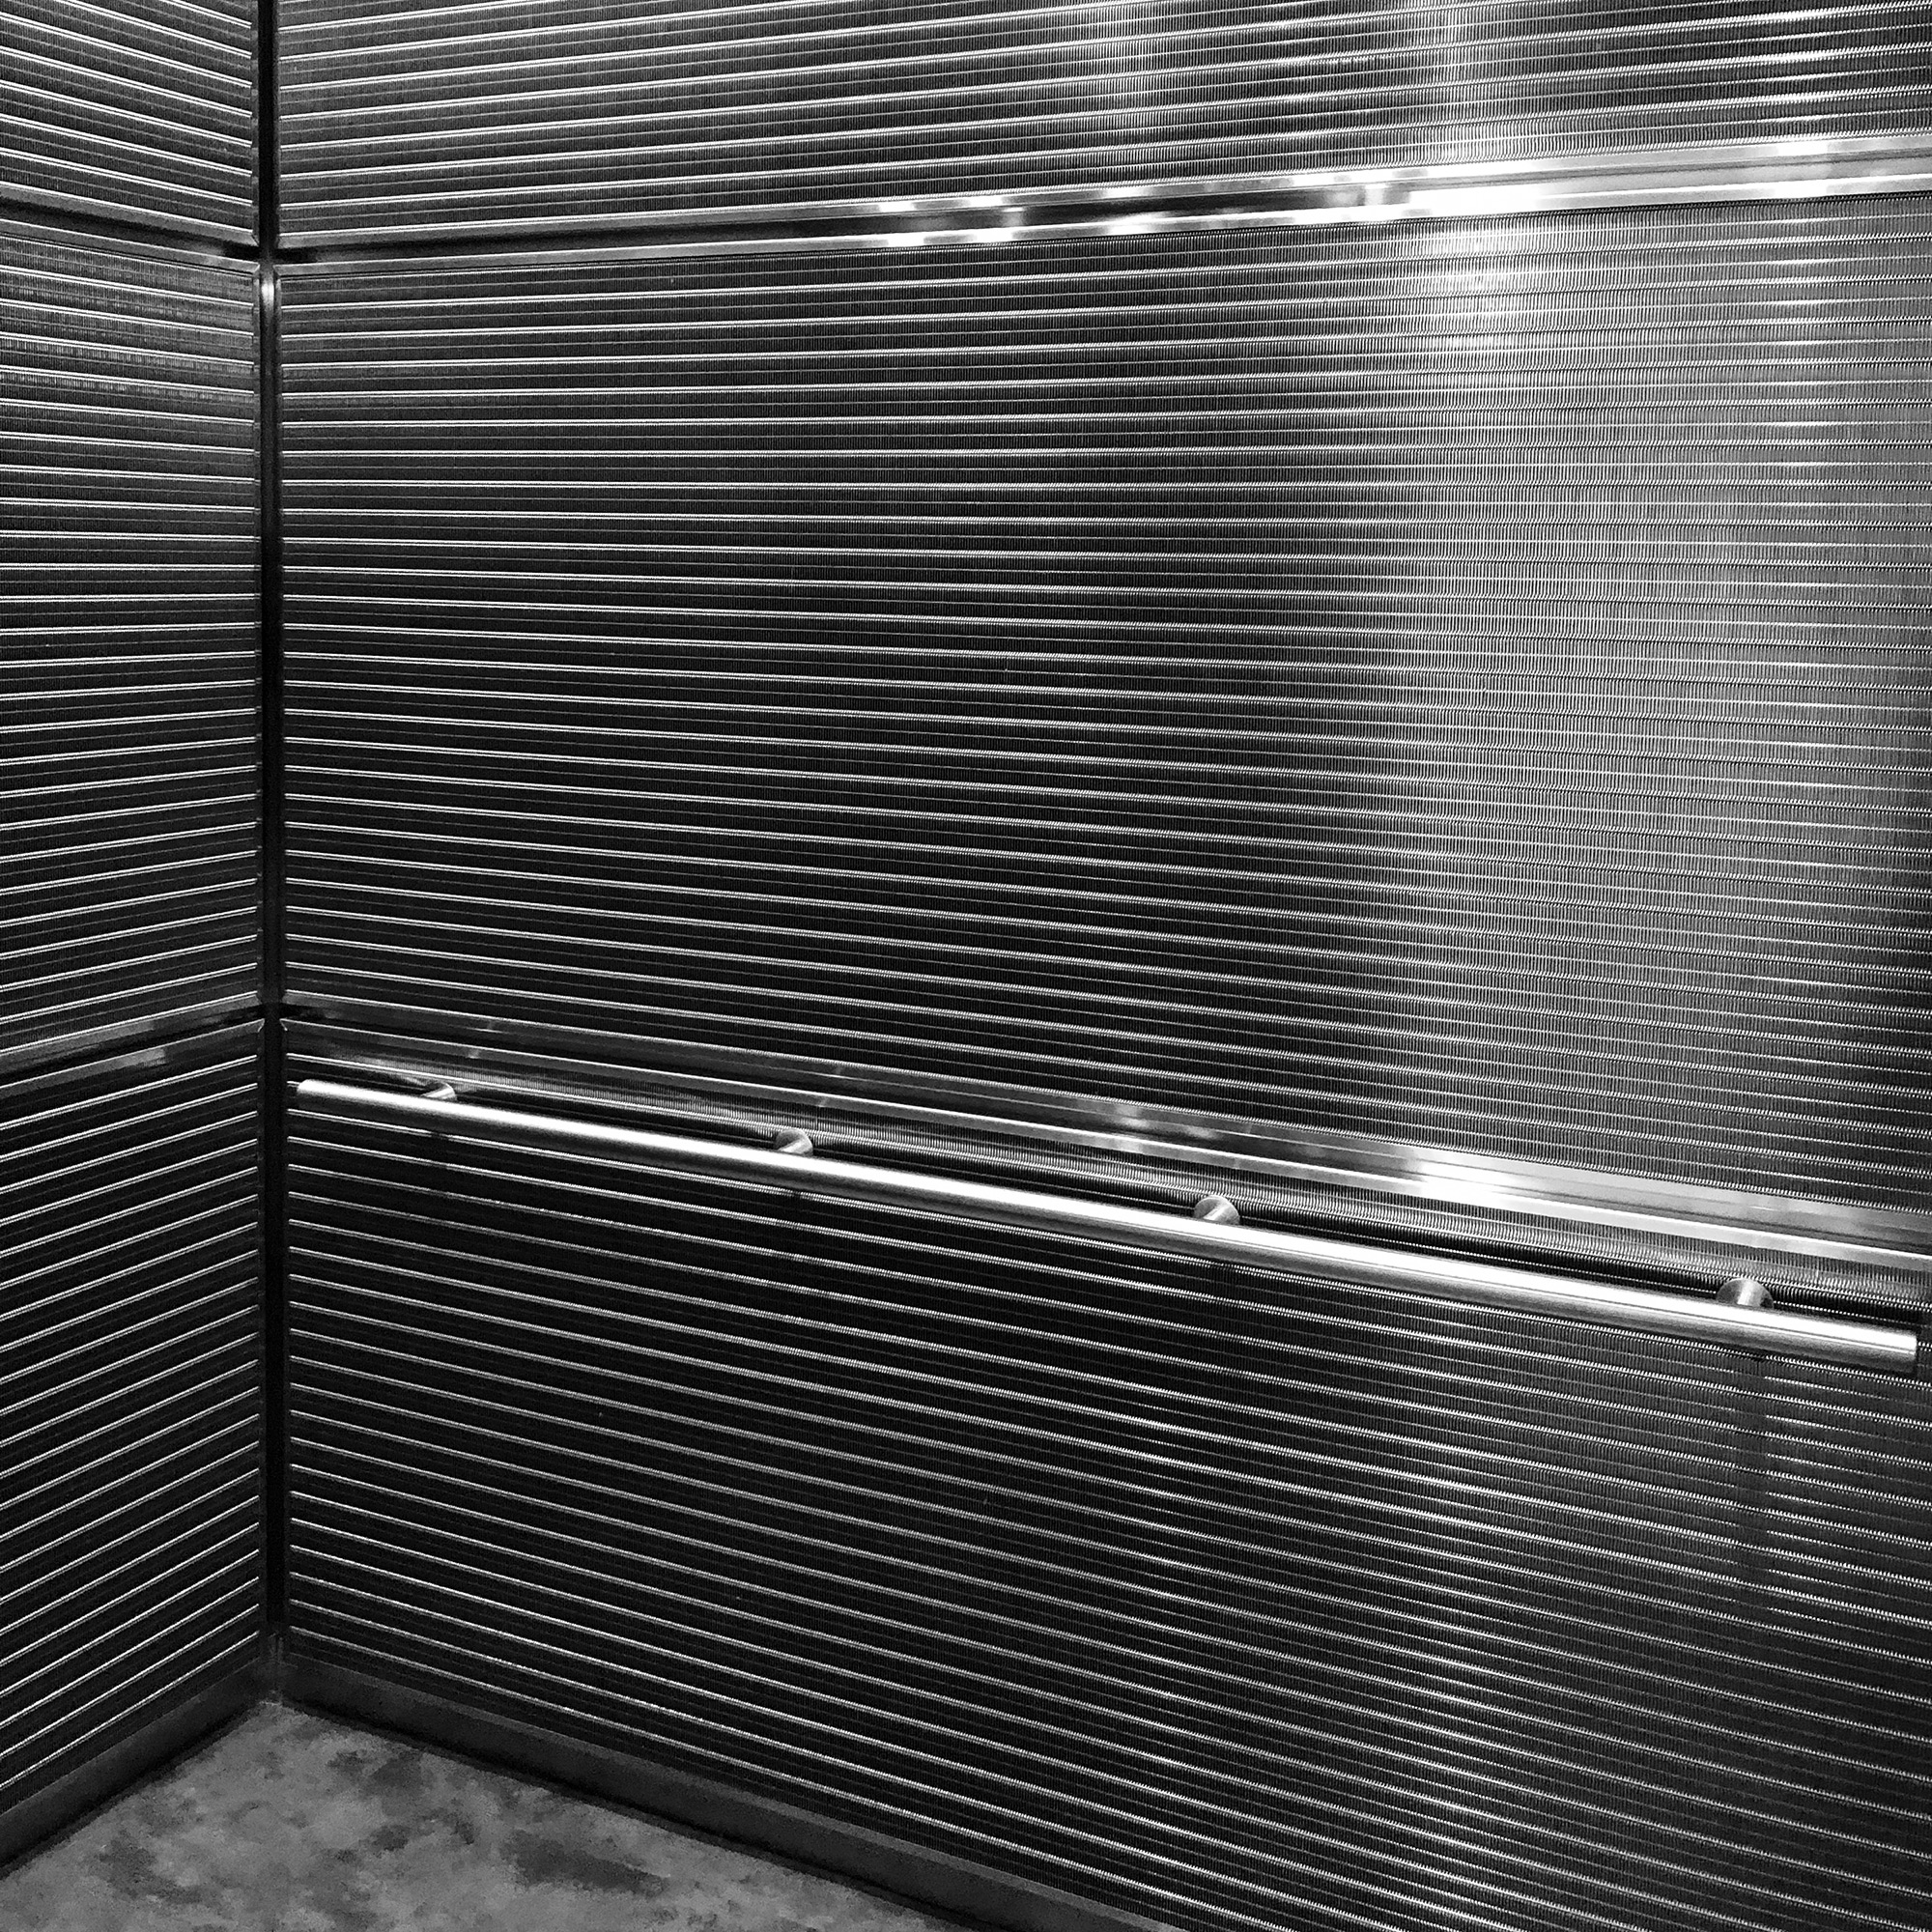 The distinct DF-6 woven wire mesh pattern by Banker Wire is used as elevator cladding in the Avalon at Newton Highlands luxury apartments.